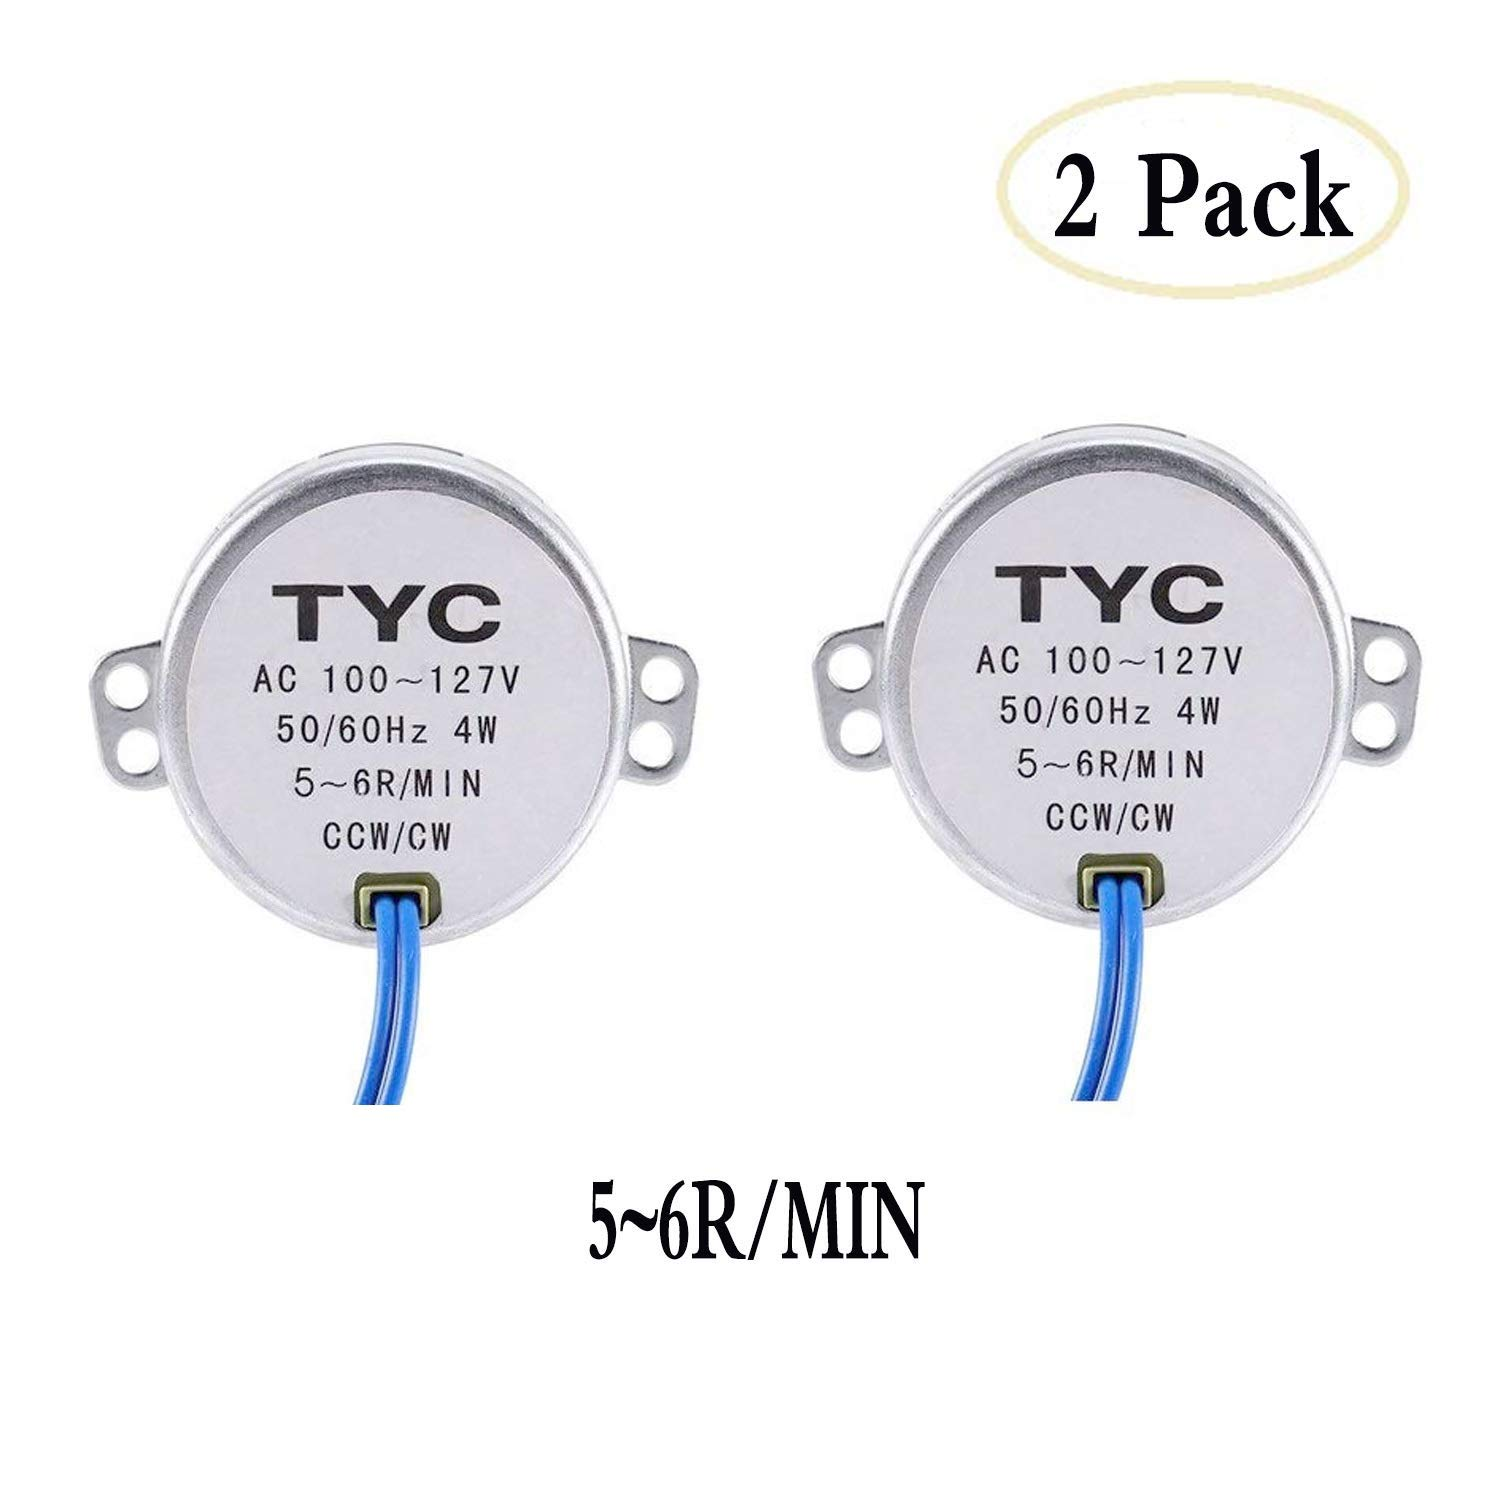 2Pack Synchronous Synchron MotorTurntable Motor Electric Motor for Cup Turner,Cuptisserie,Tumbler Cup Rotator with 7mm Flexible Coupling Connector,50//60Hz AC100~127V 4W CCW//CW 5-6RPM